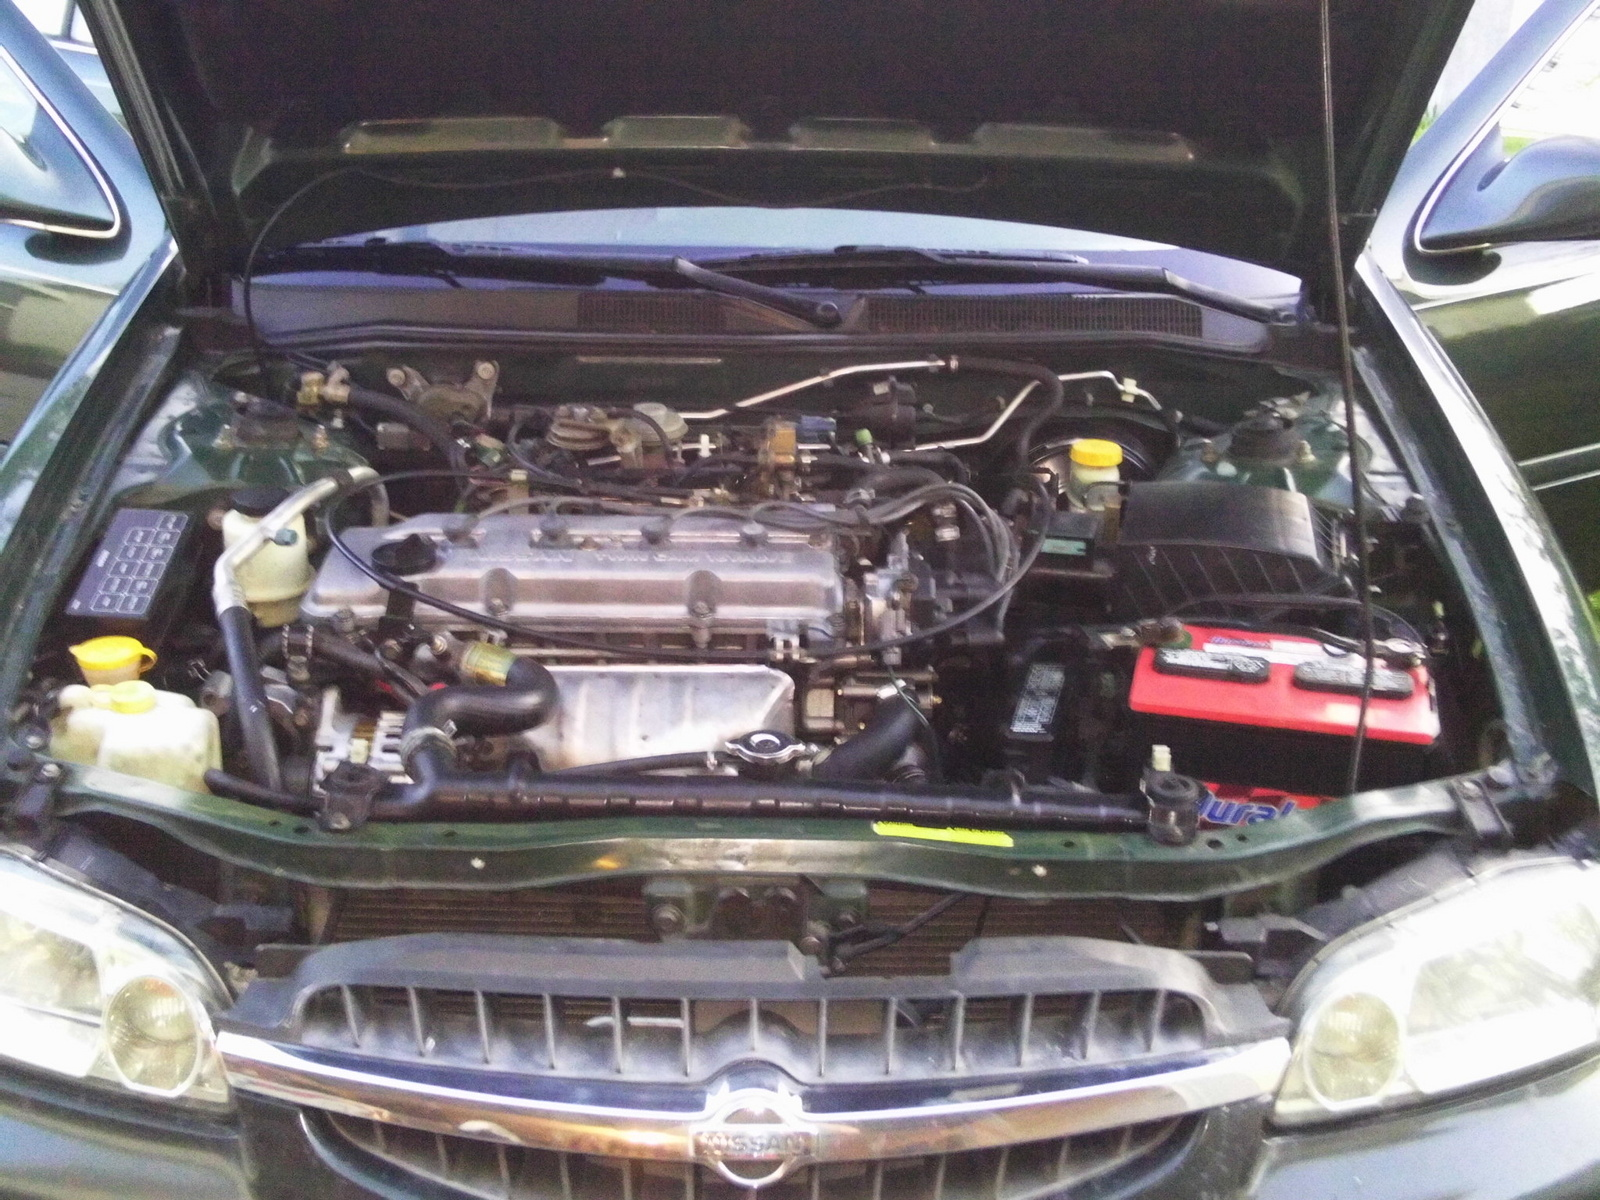 2001 nissan altima pictures cargurus for Nissan altima 2001 motor